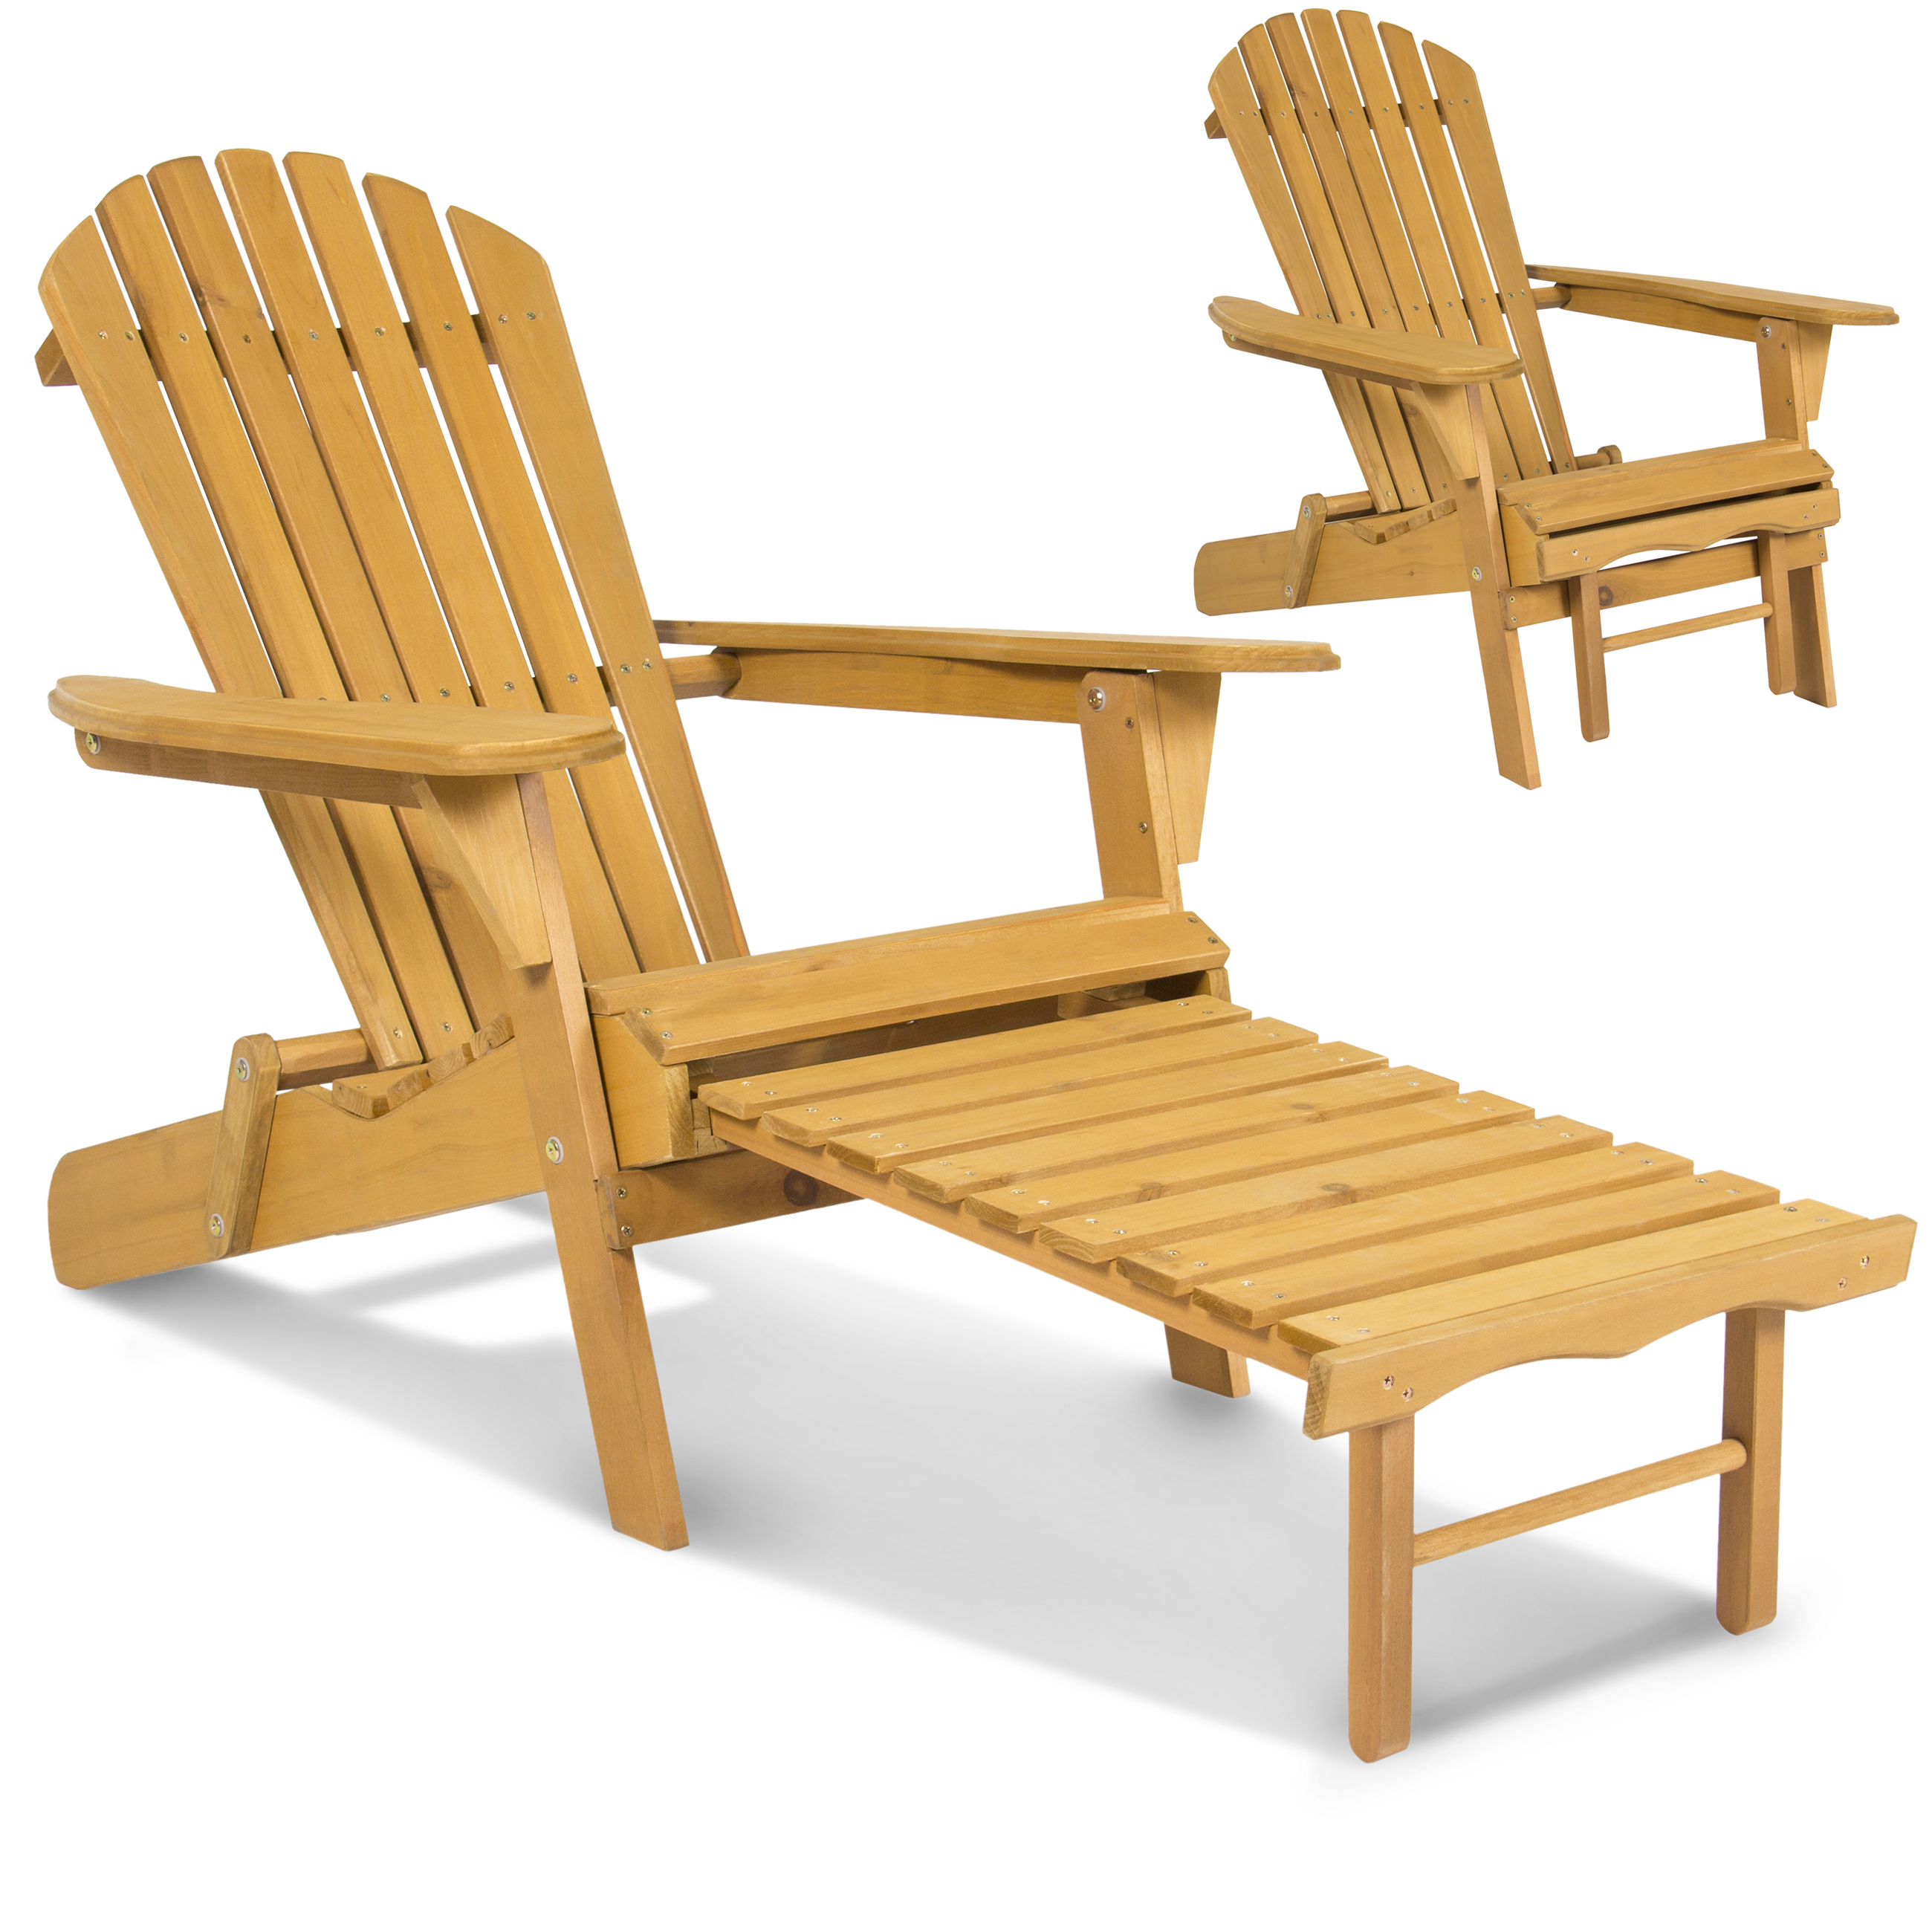 Best Choice Products Outdoor Wood Adirondack Chair Foldable w  Pull Out Ottoman Patio Deck Furniture by SKY